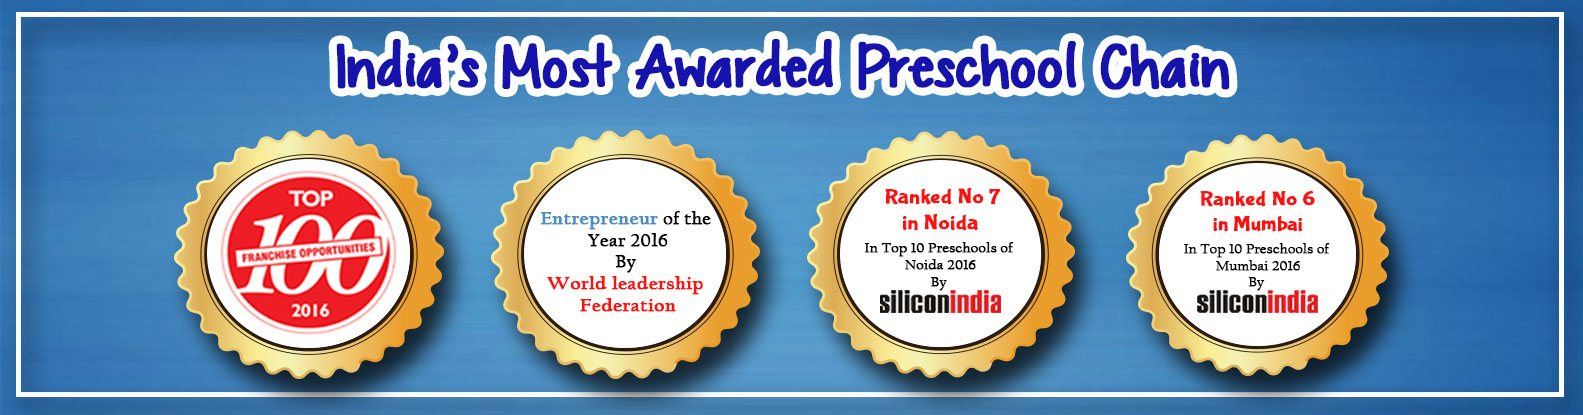 India's Most Awarded Preschool Chain